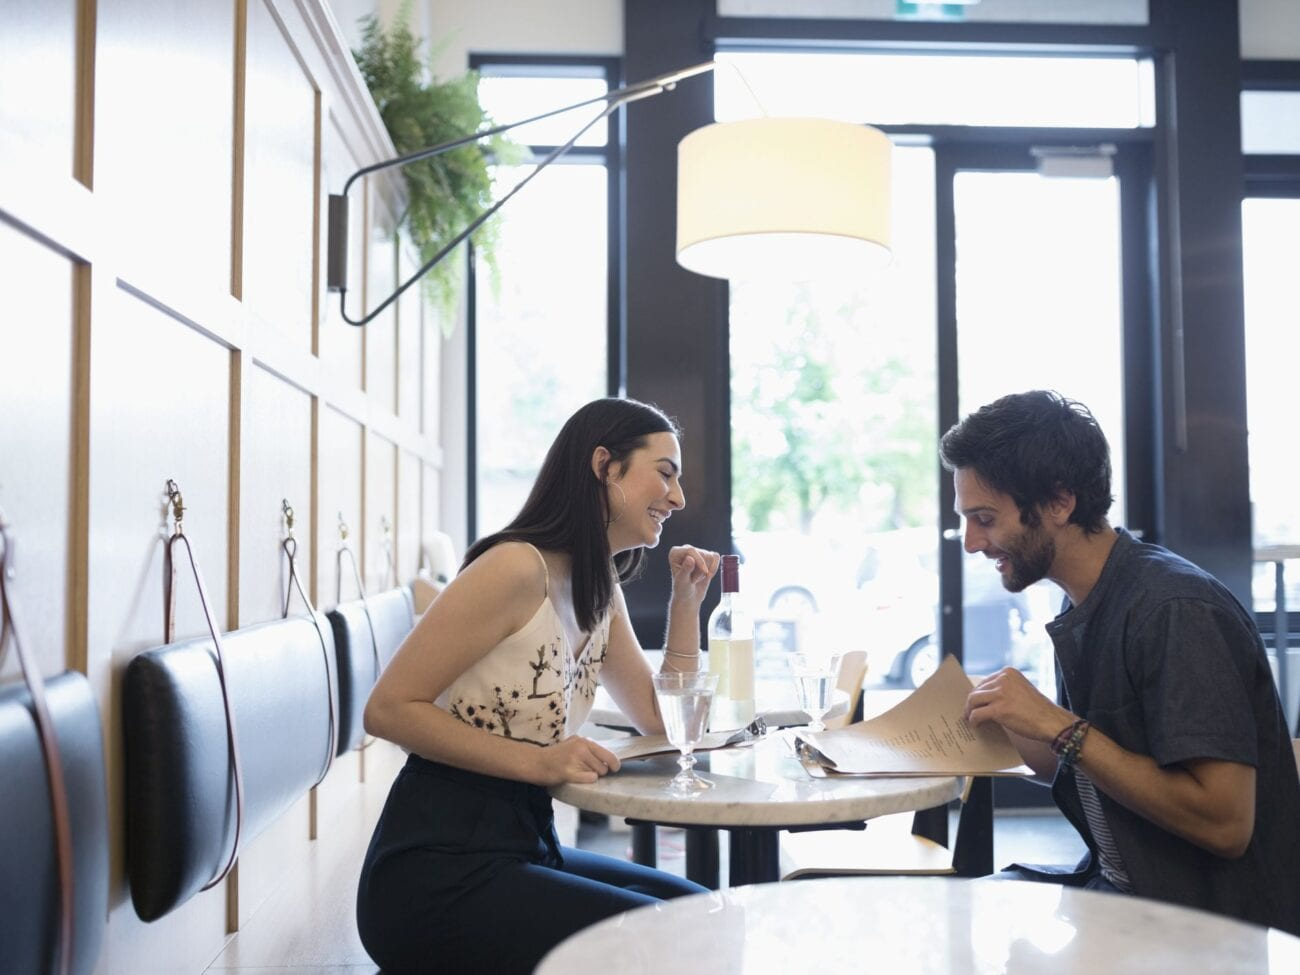 A first date can be daunting. Here are some tips on how to make sure that you're safe during a first date.